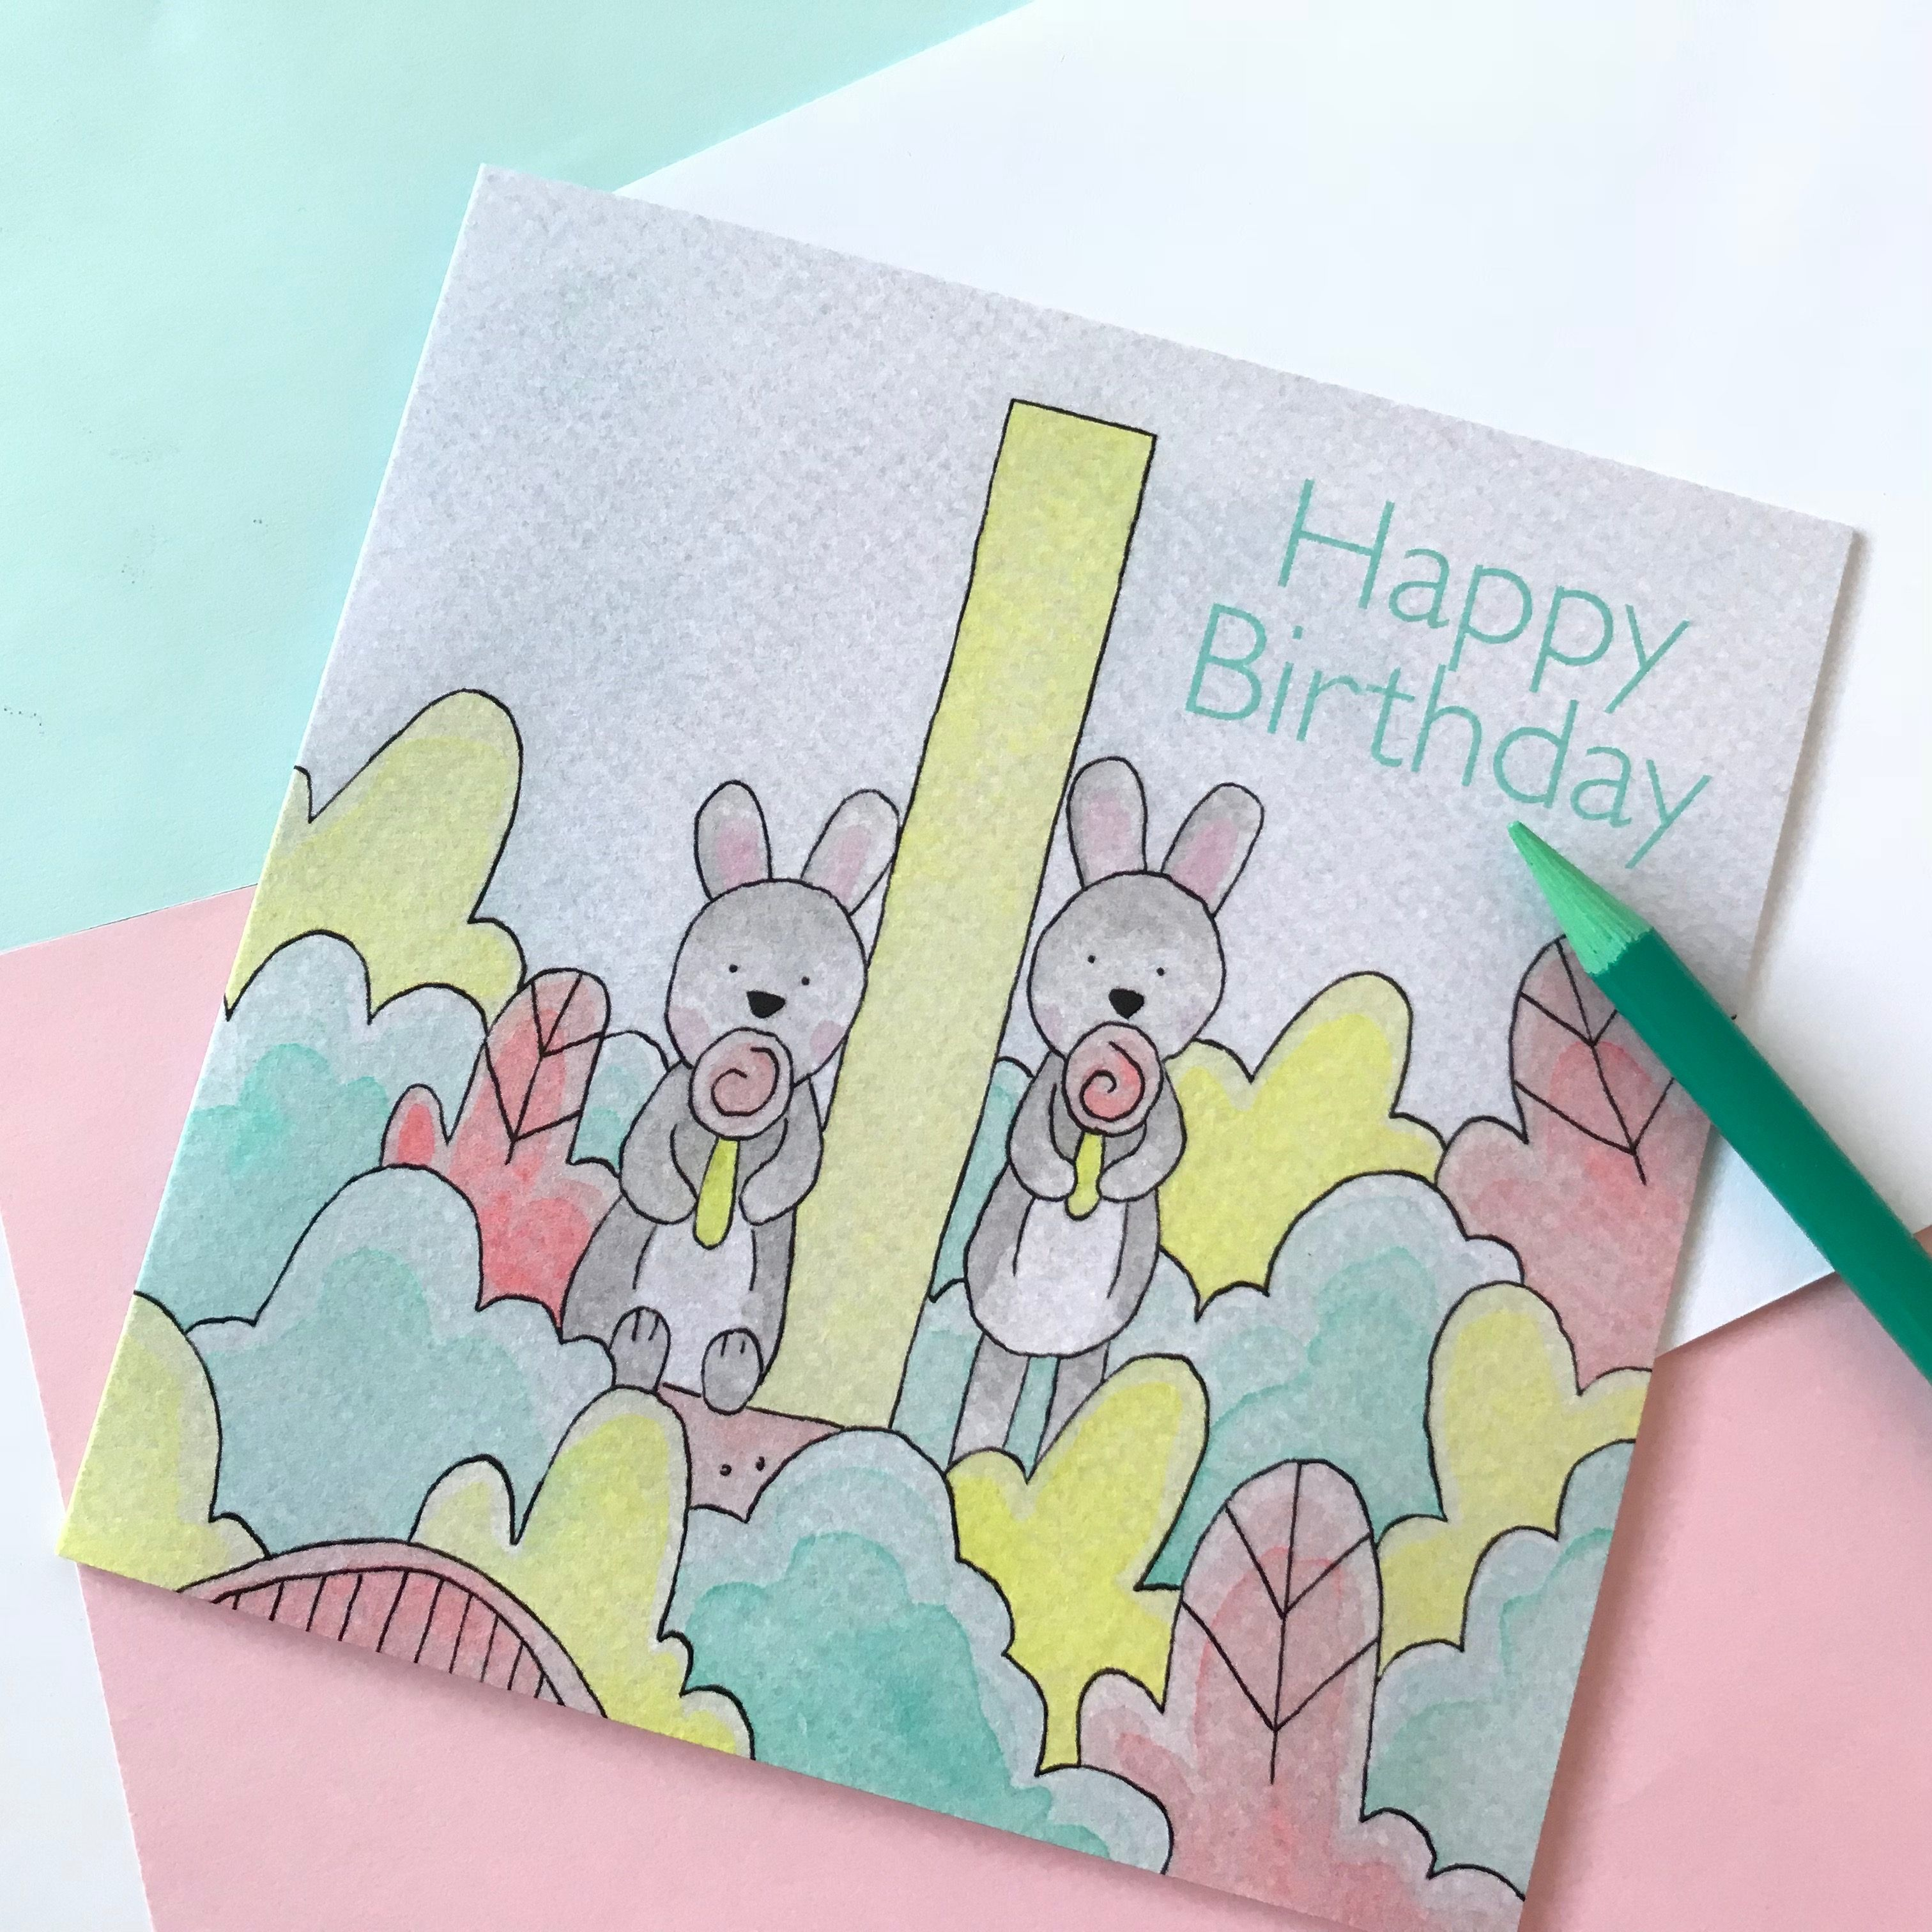 1st Birthday Card For Boys And Girls 2 50 Birthday Rabbits Watercolour Contemporary Blank Cards By Betwee 1st Birthday Cards Kids Birthday Cards Kids Cards